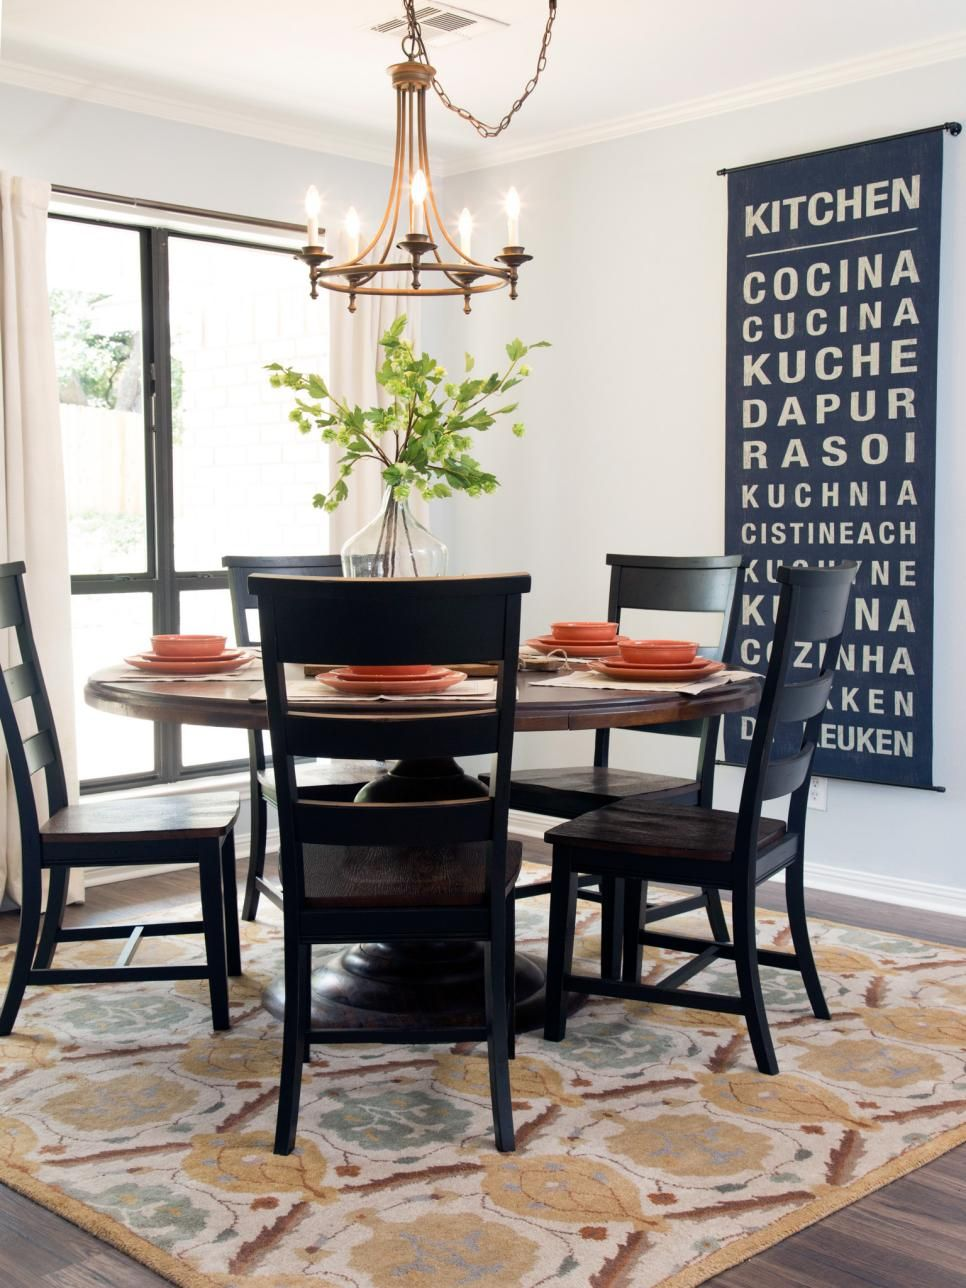 Fixer upper kitchen table decor - Joanna Accesorized The Dining Area With A Banner Displaying The Word Kitchen In A